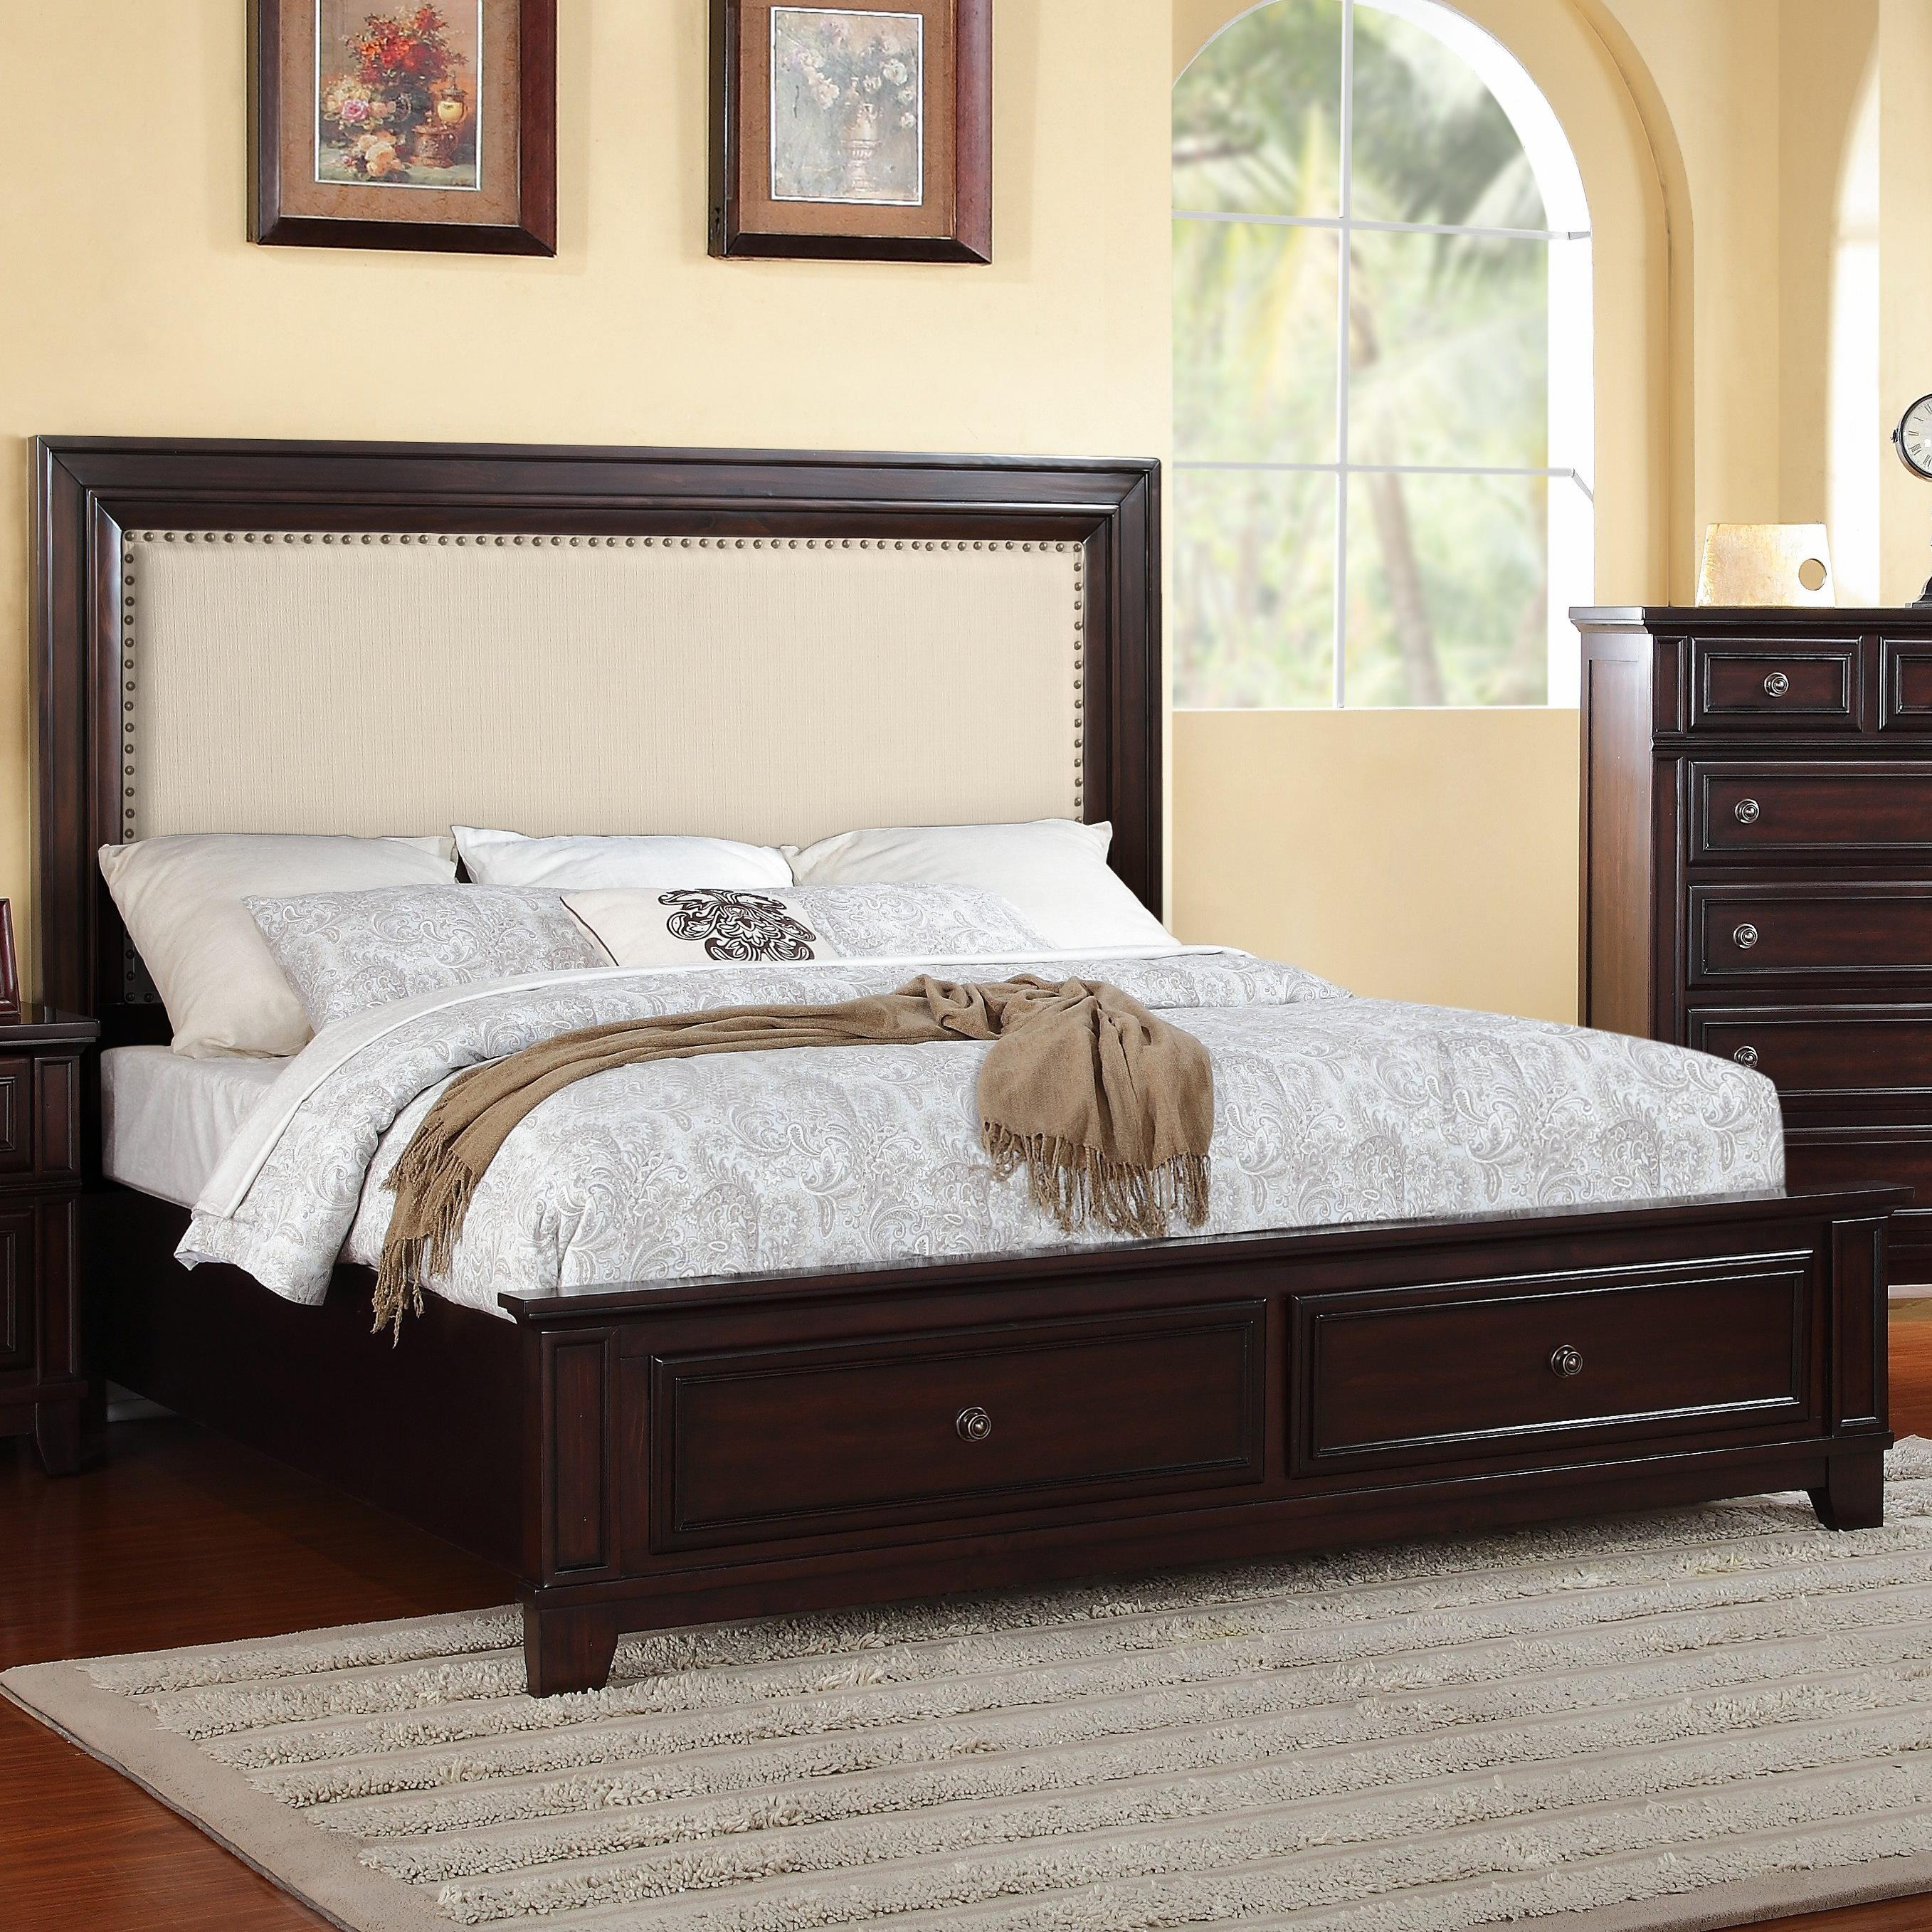 Elements International Harwich Queen Upholstered Low Profile Storage Bed Miskelly Furniture